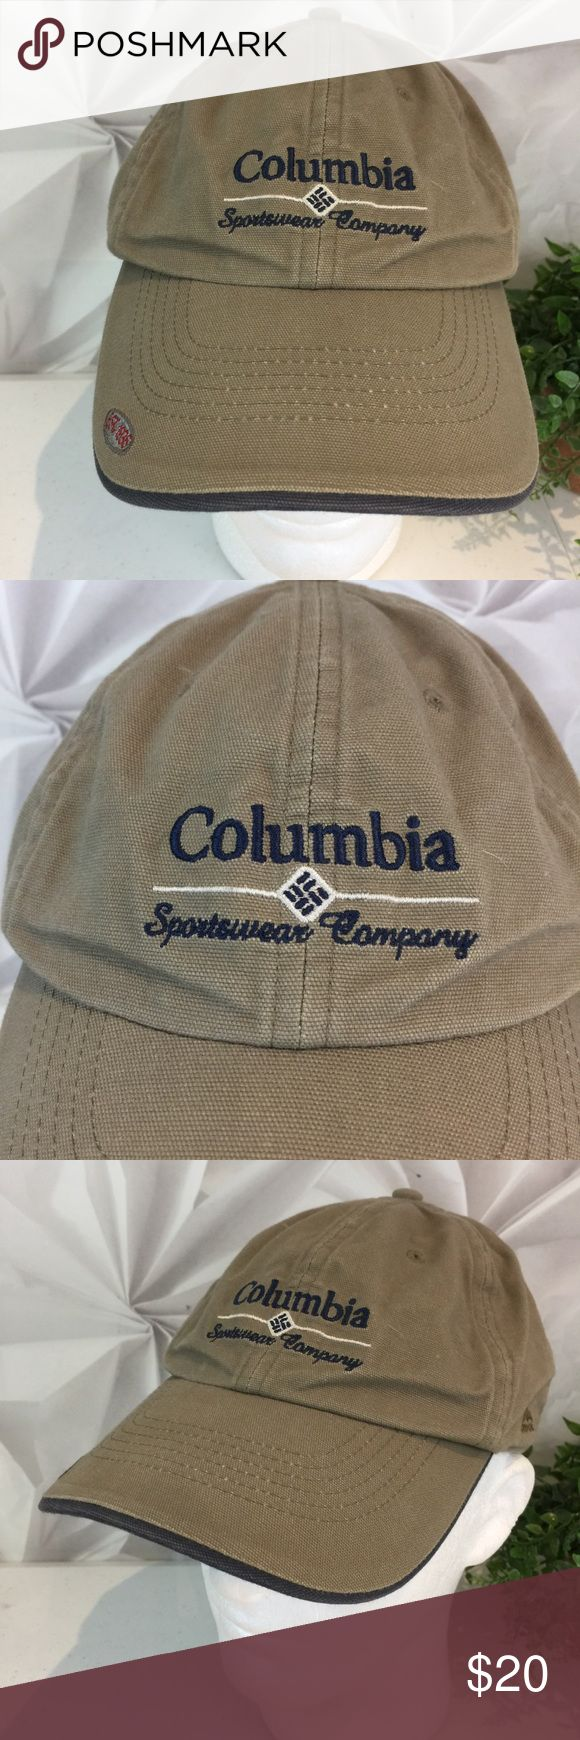 Columbia Sportswear Co Outdoor Hat EST 1938 This listing is for a Columbia Sportswear Co Outdoor Hat EST 1938 Olive Green OS   We LOVE finding unique and special hats ... of all kinds. Some are new and some have been pre-owned.   We sell NFL, NBA, NHL, and MLB hats. NCAA hats and NASCAR hats. And, we find other great hats like this one ...  Comes from a smoke free and pet free environment. Hat will be shipped in a box to prevent it from from getting crushed. Columbia Sportswear Co…